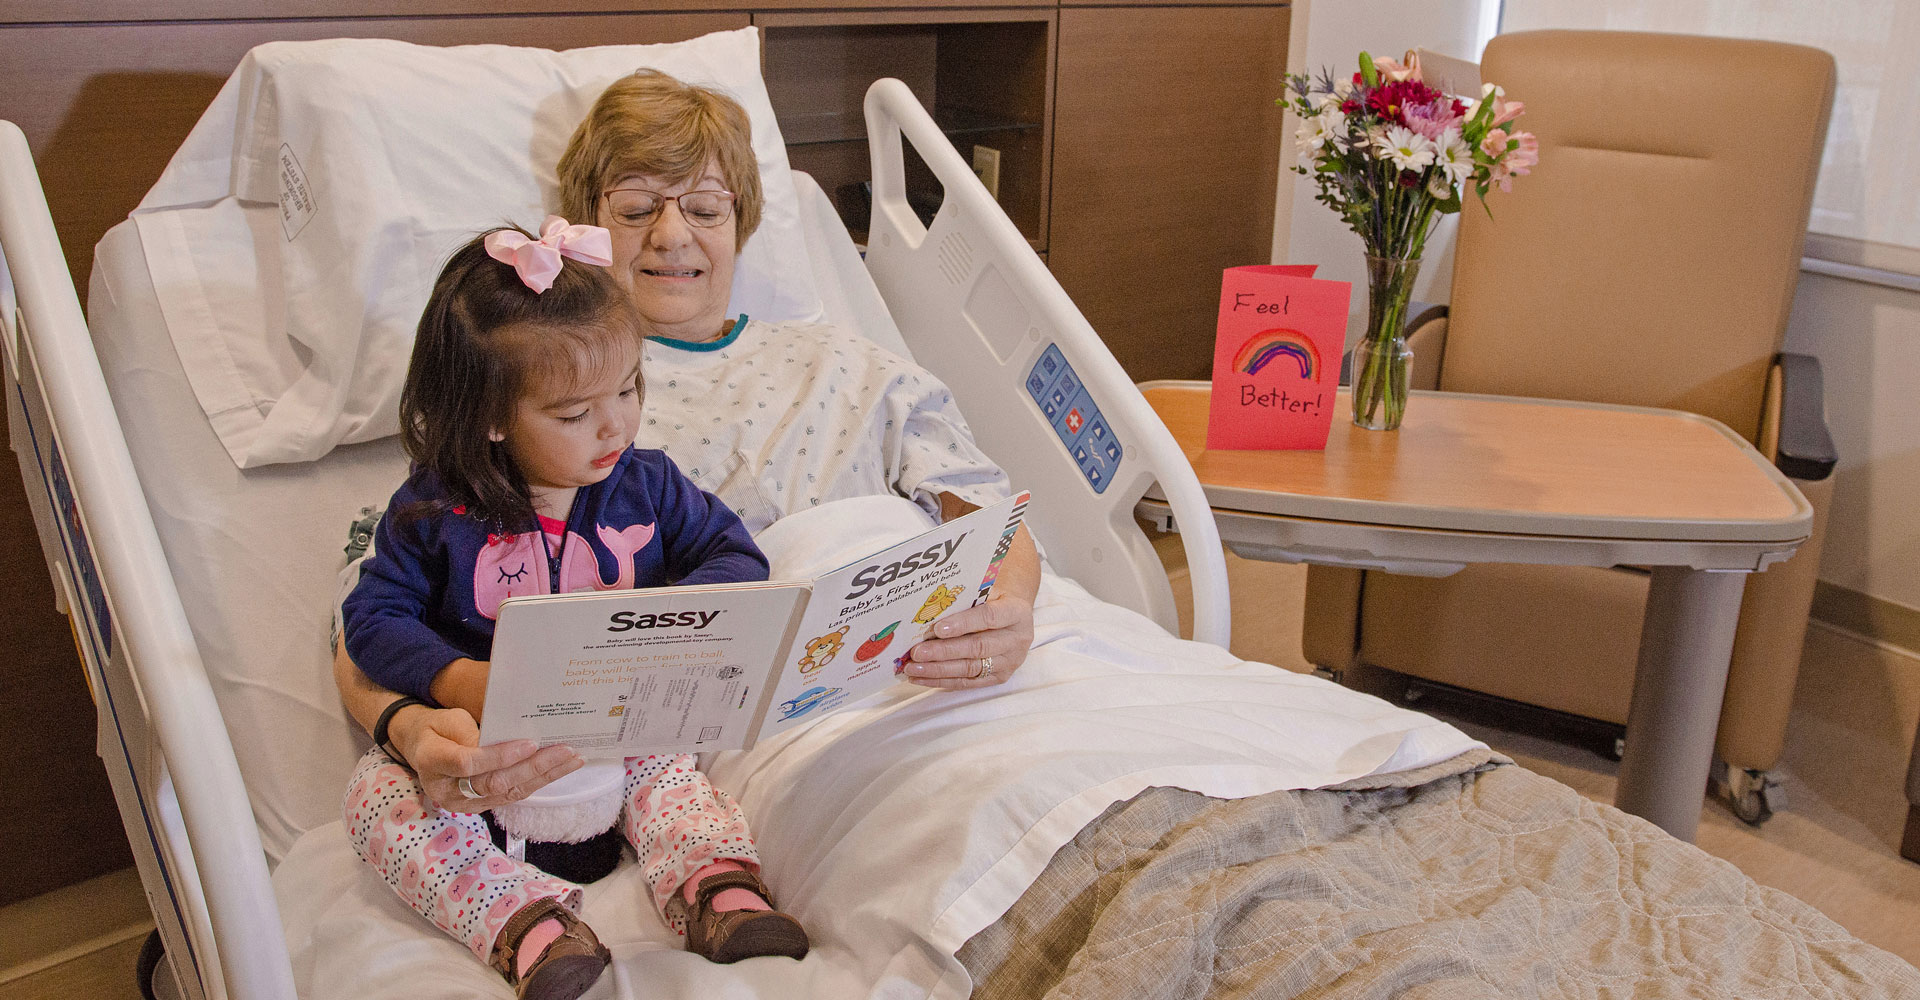 Grandma reading to little granddaughter while she visits grandma in the hospital